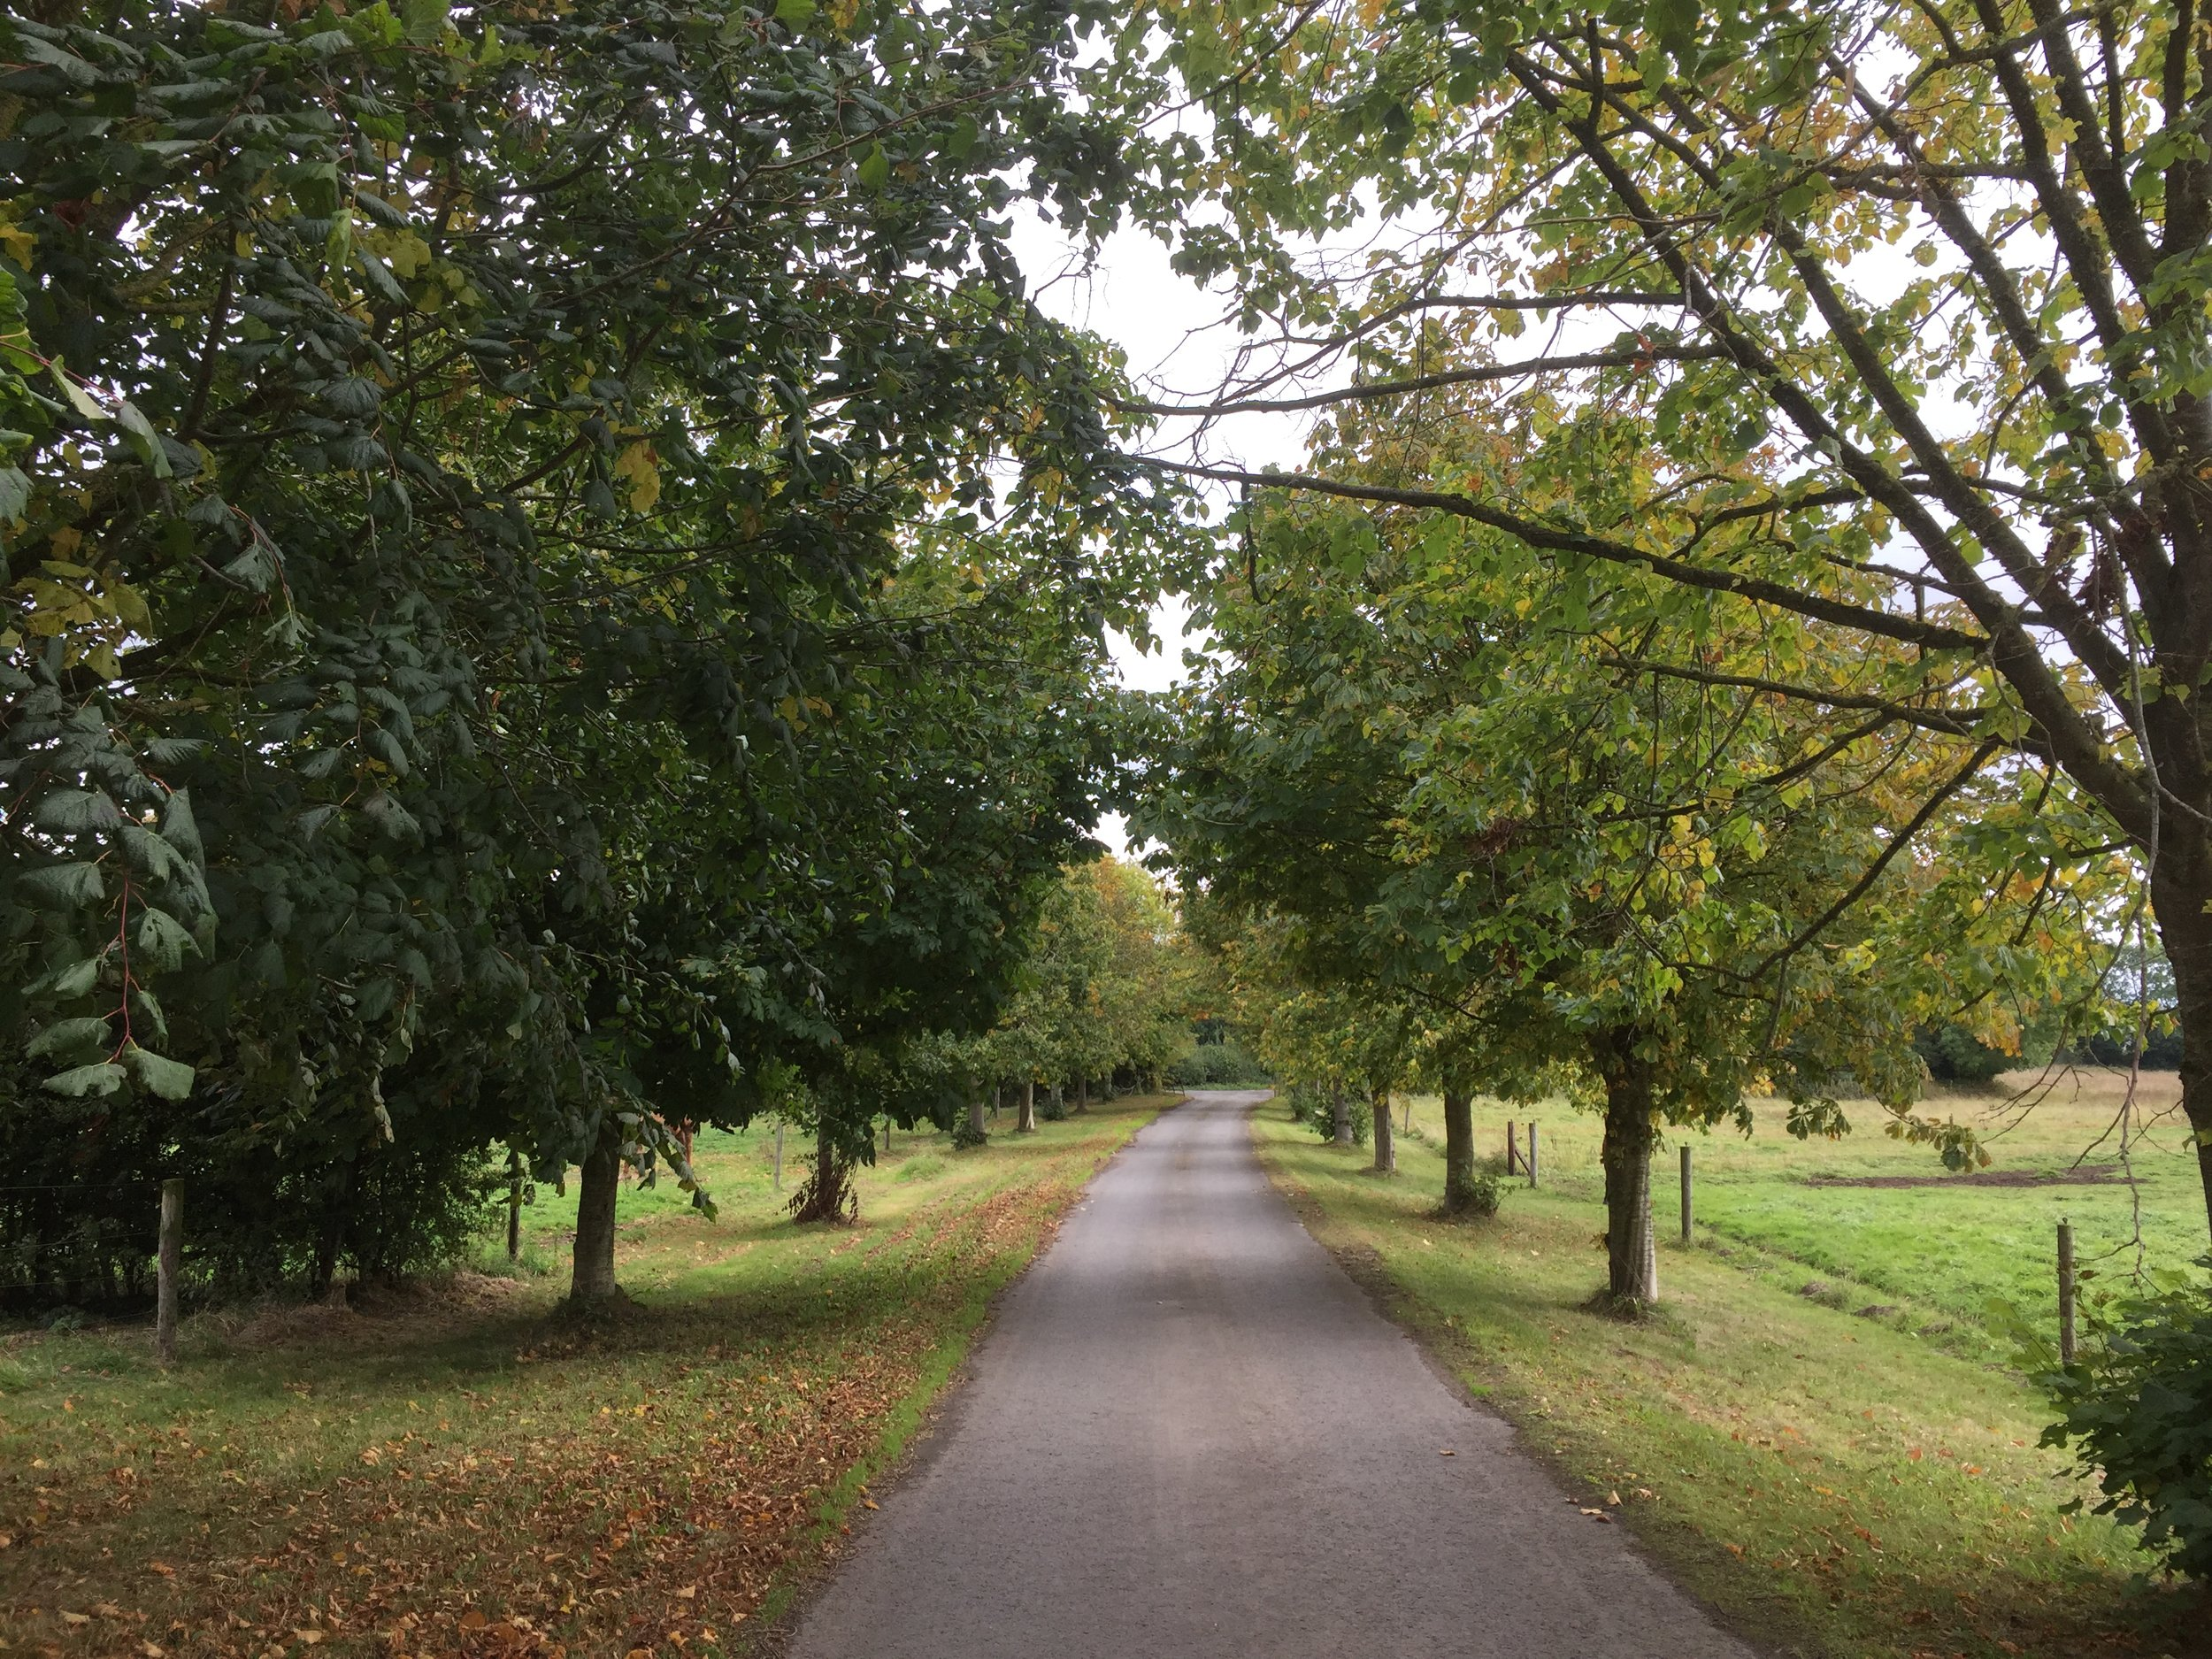 Chestnut and lime tree avenue in late September 2018 after an unusually hot summer with temperatures that went up to 29 degrees centigrade in June.